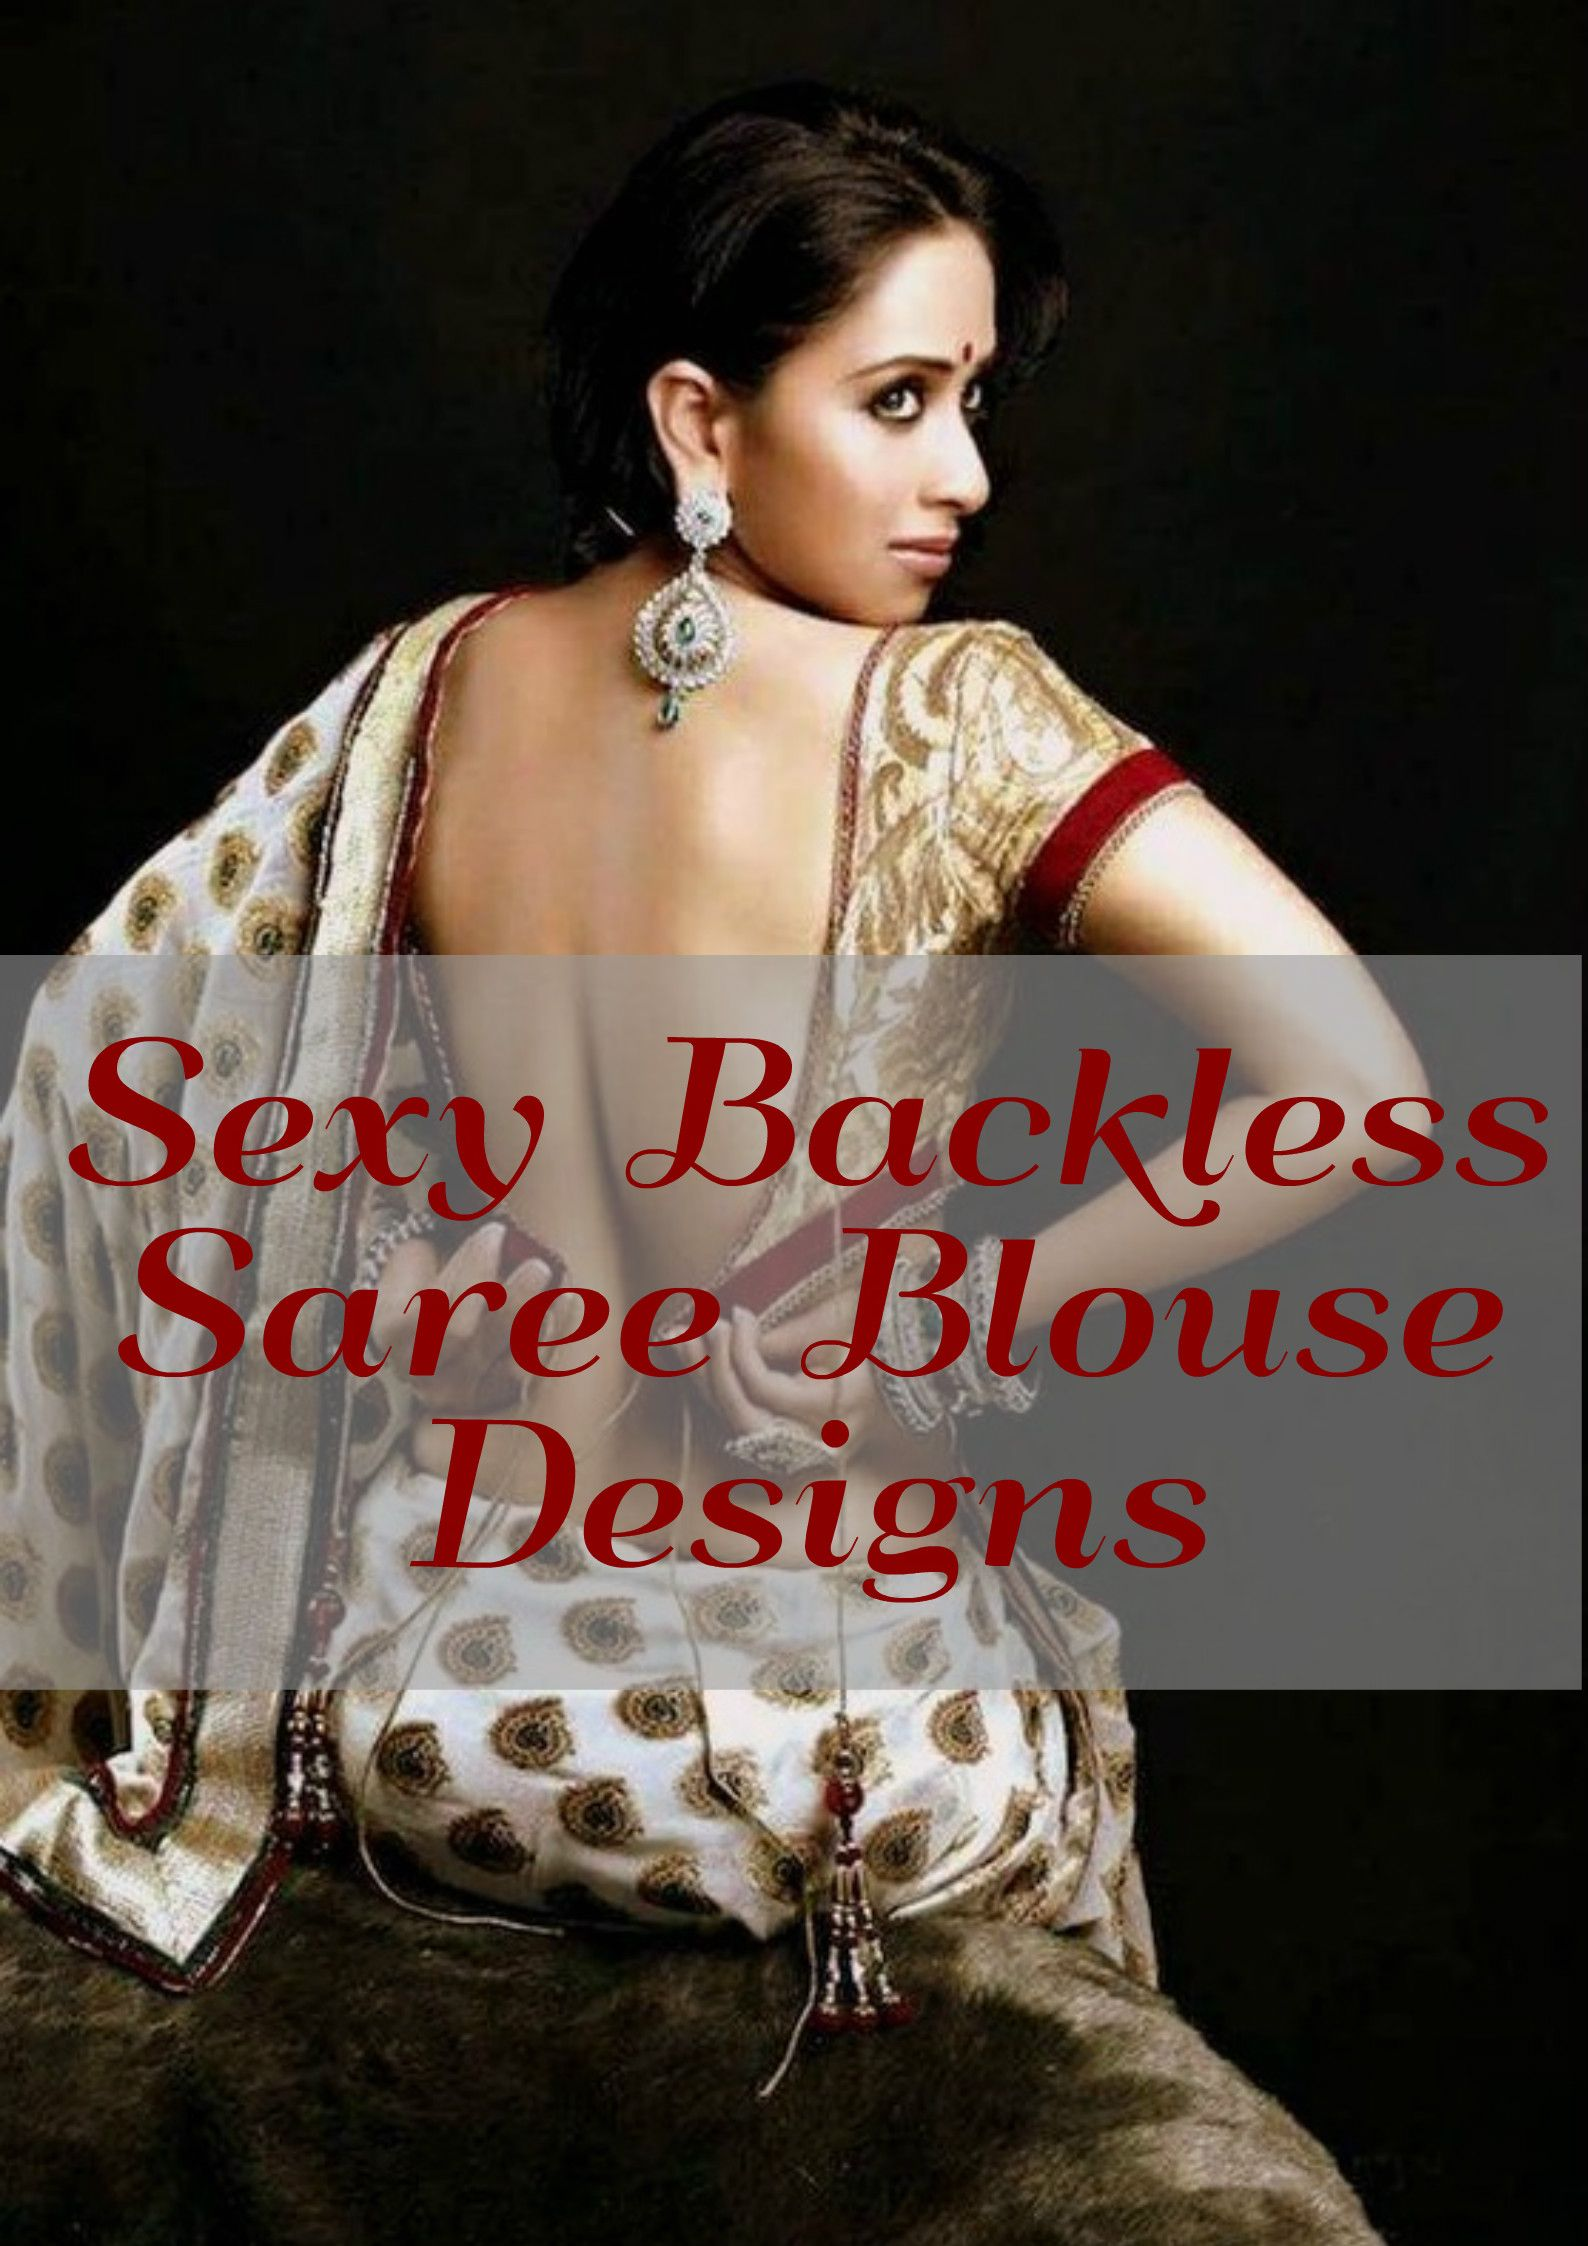 Shall Backless saree blouses designs for women are absolutely